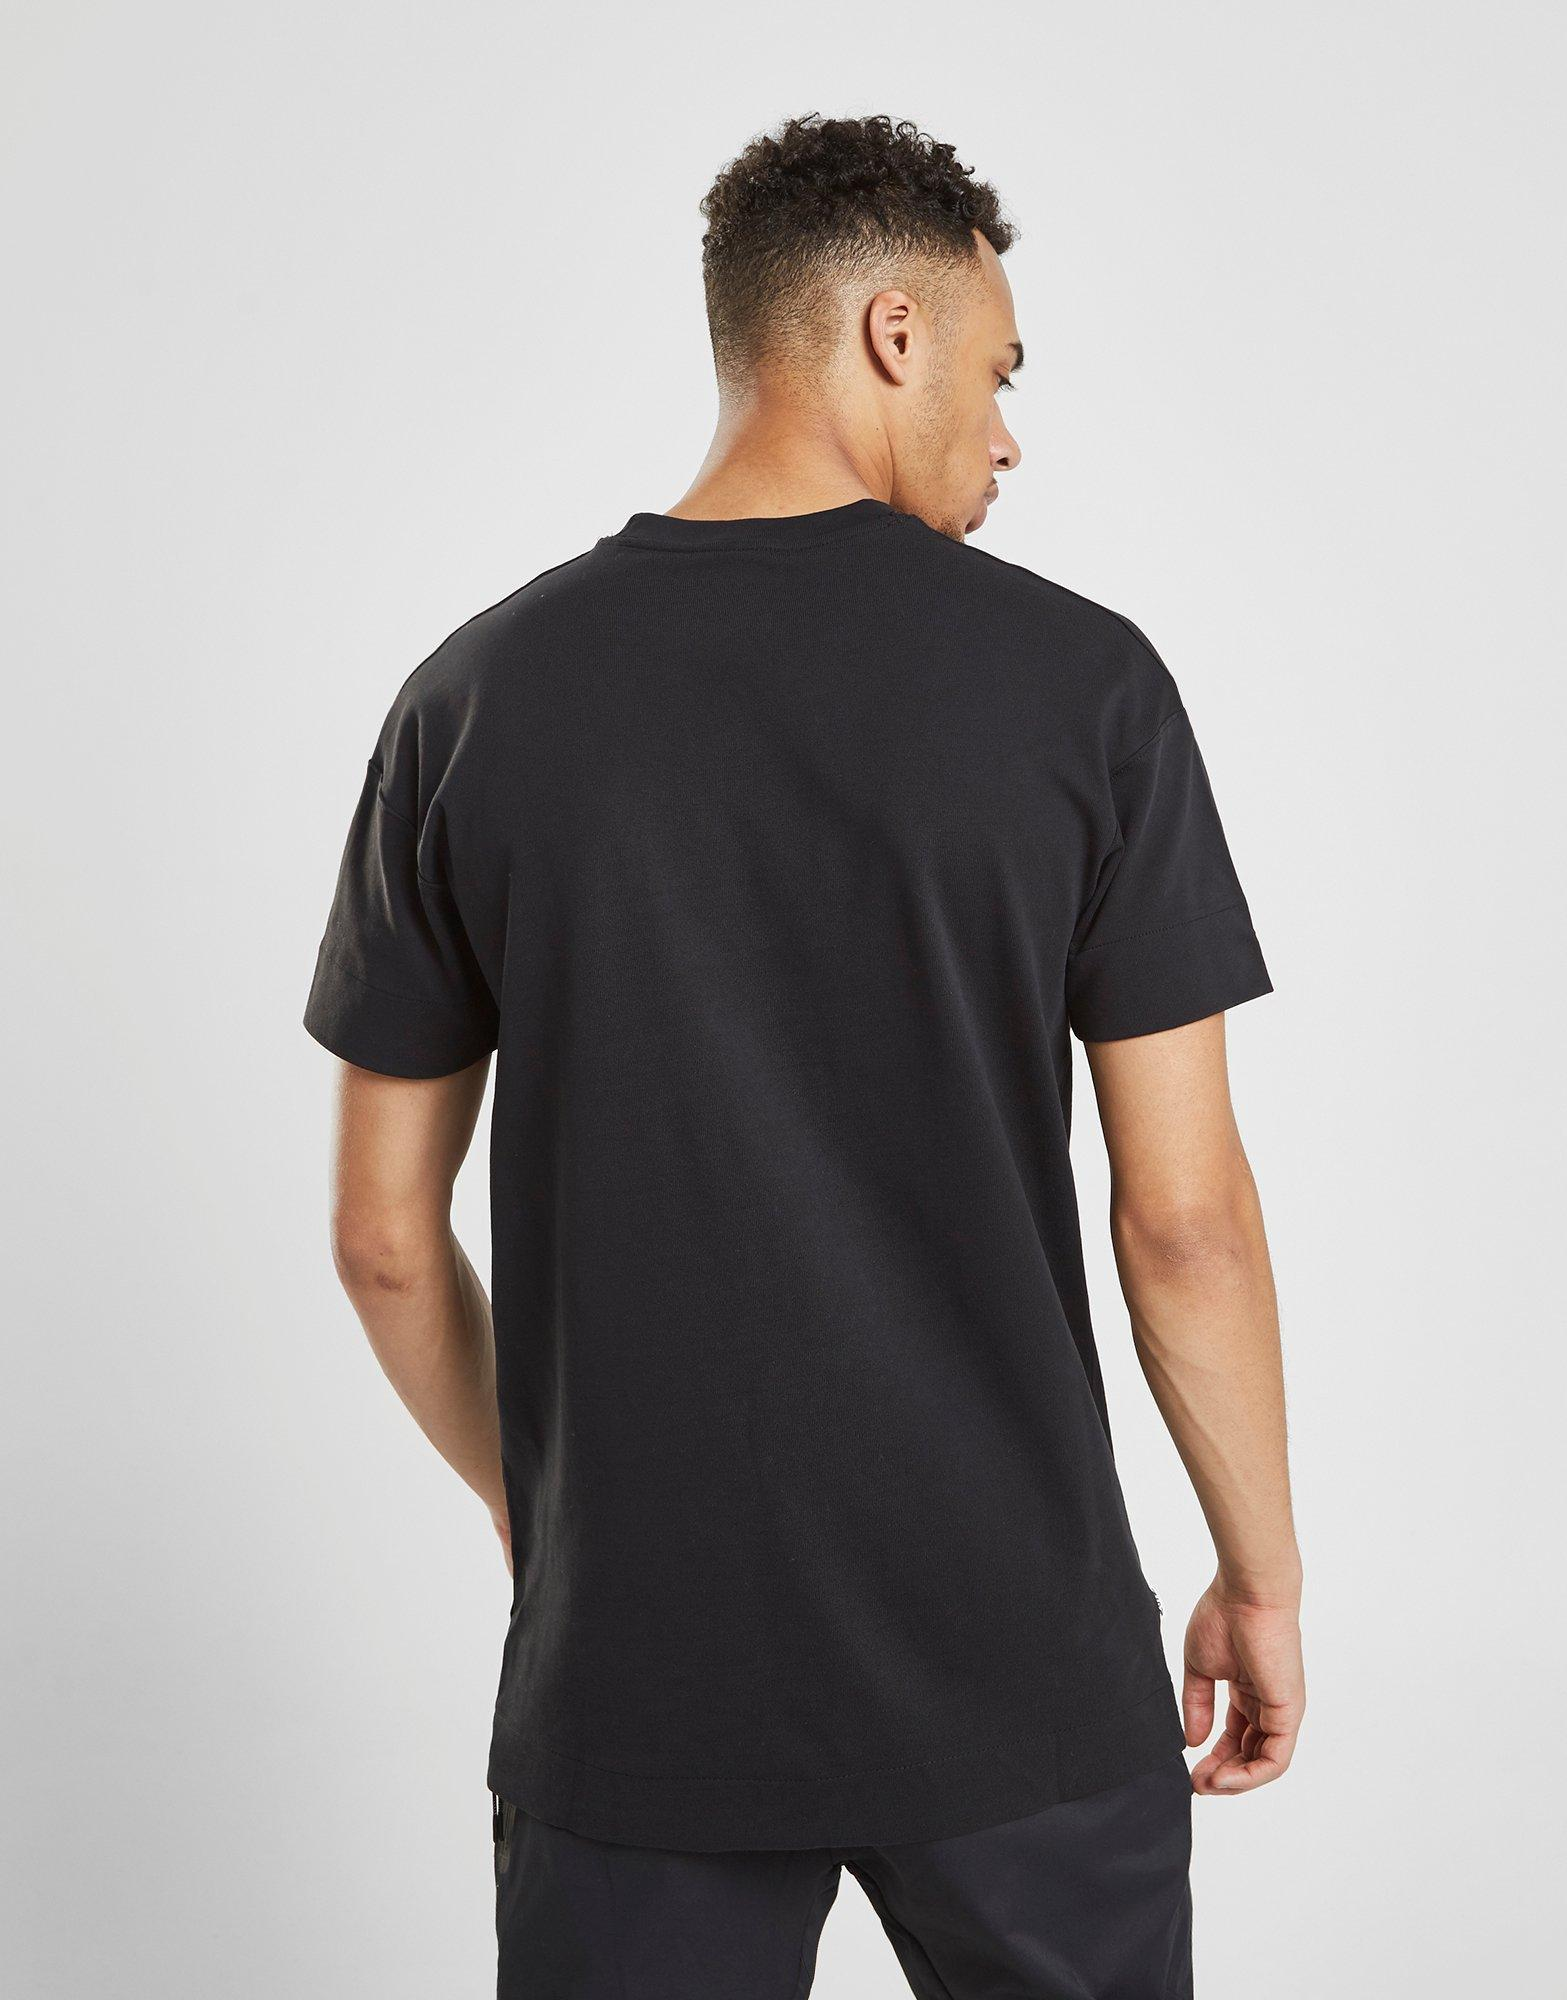 f34050c87 Lyst - Nike Sportswear Logo T-shirt in Black for Men